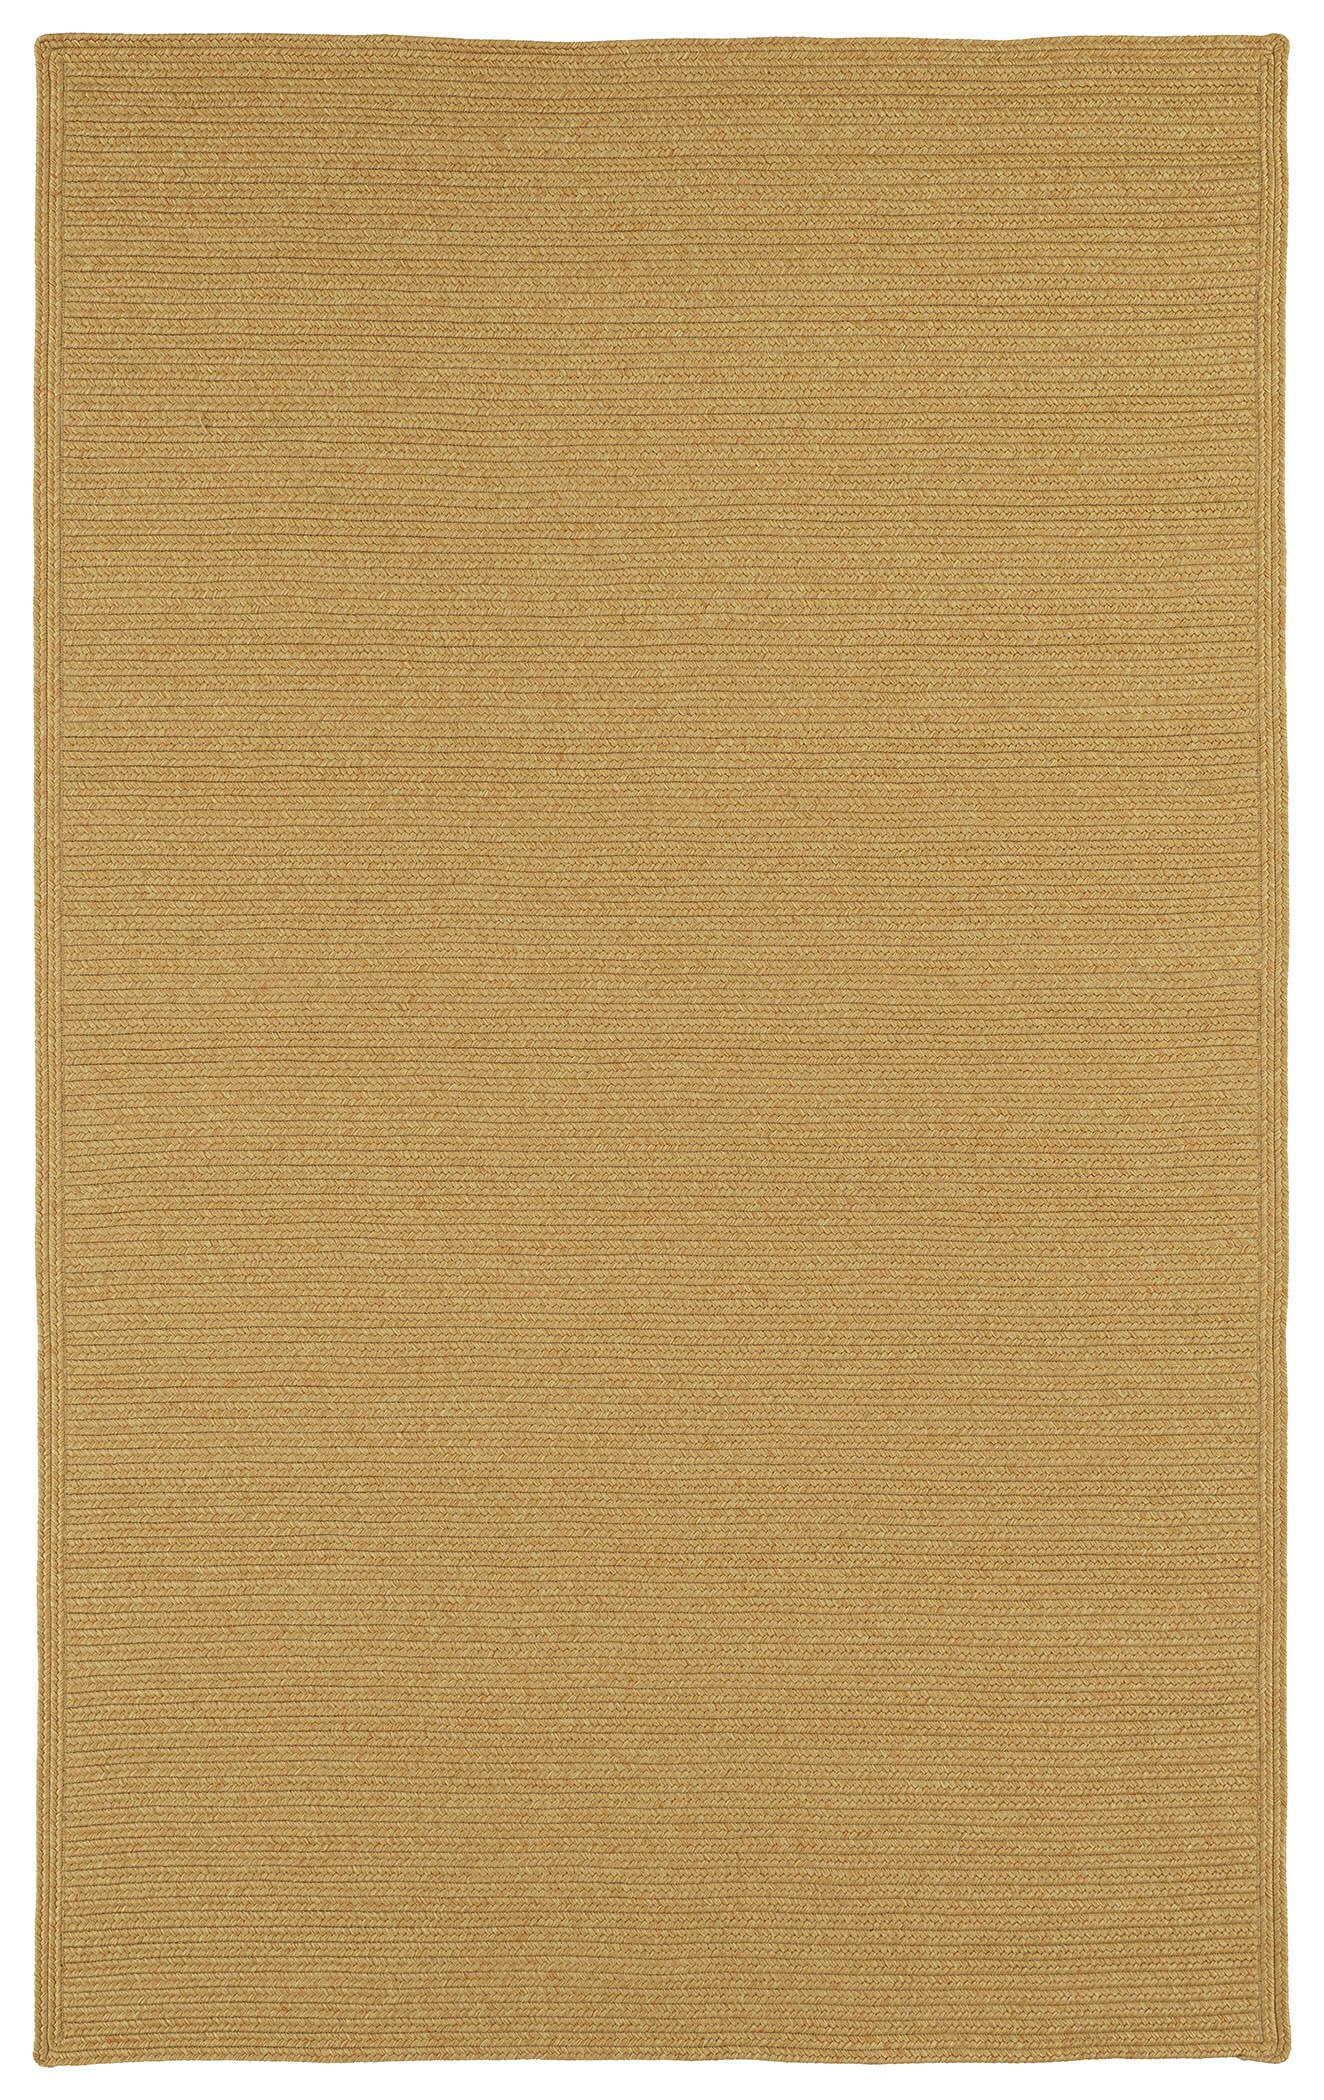 Josephine Pumpkin Indoor/Outdoor Area Rug Rug Size: Rectangle 5' x 8'